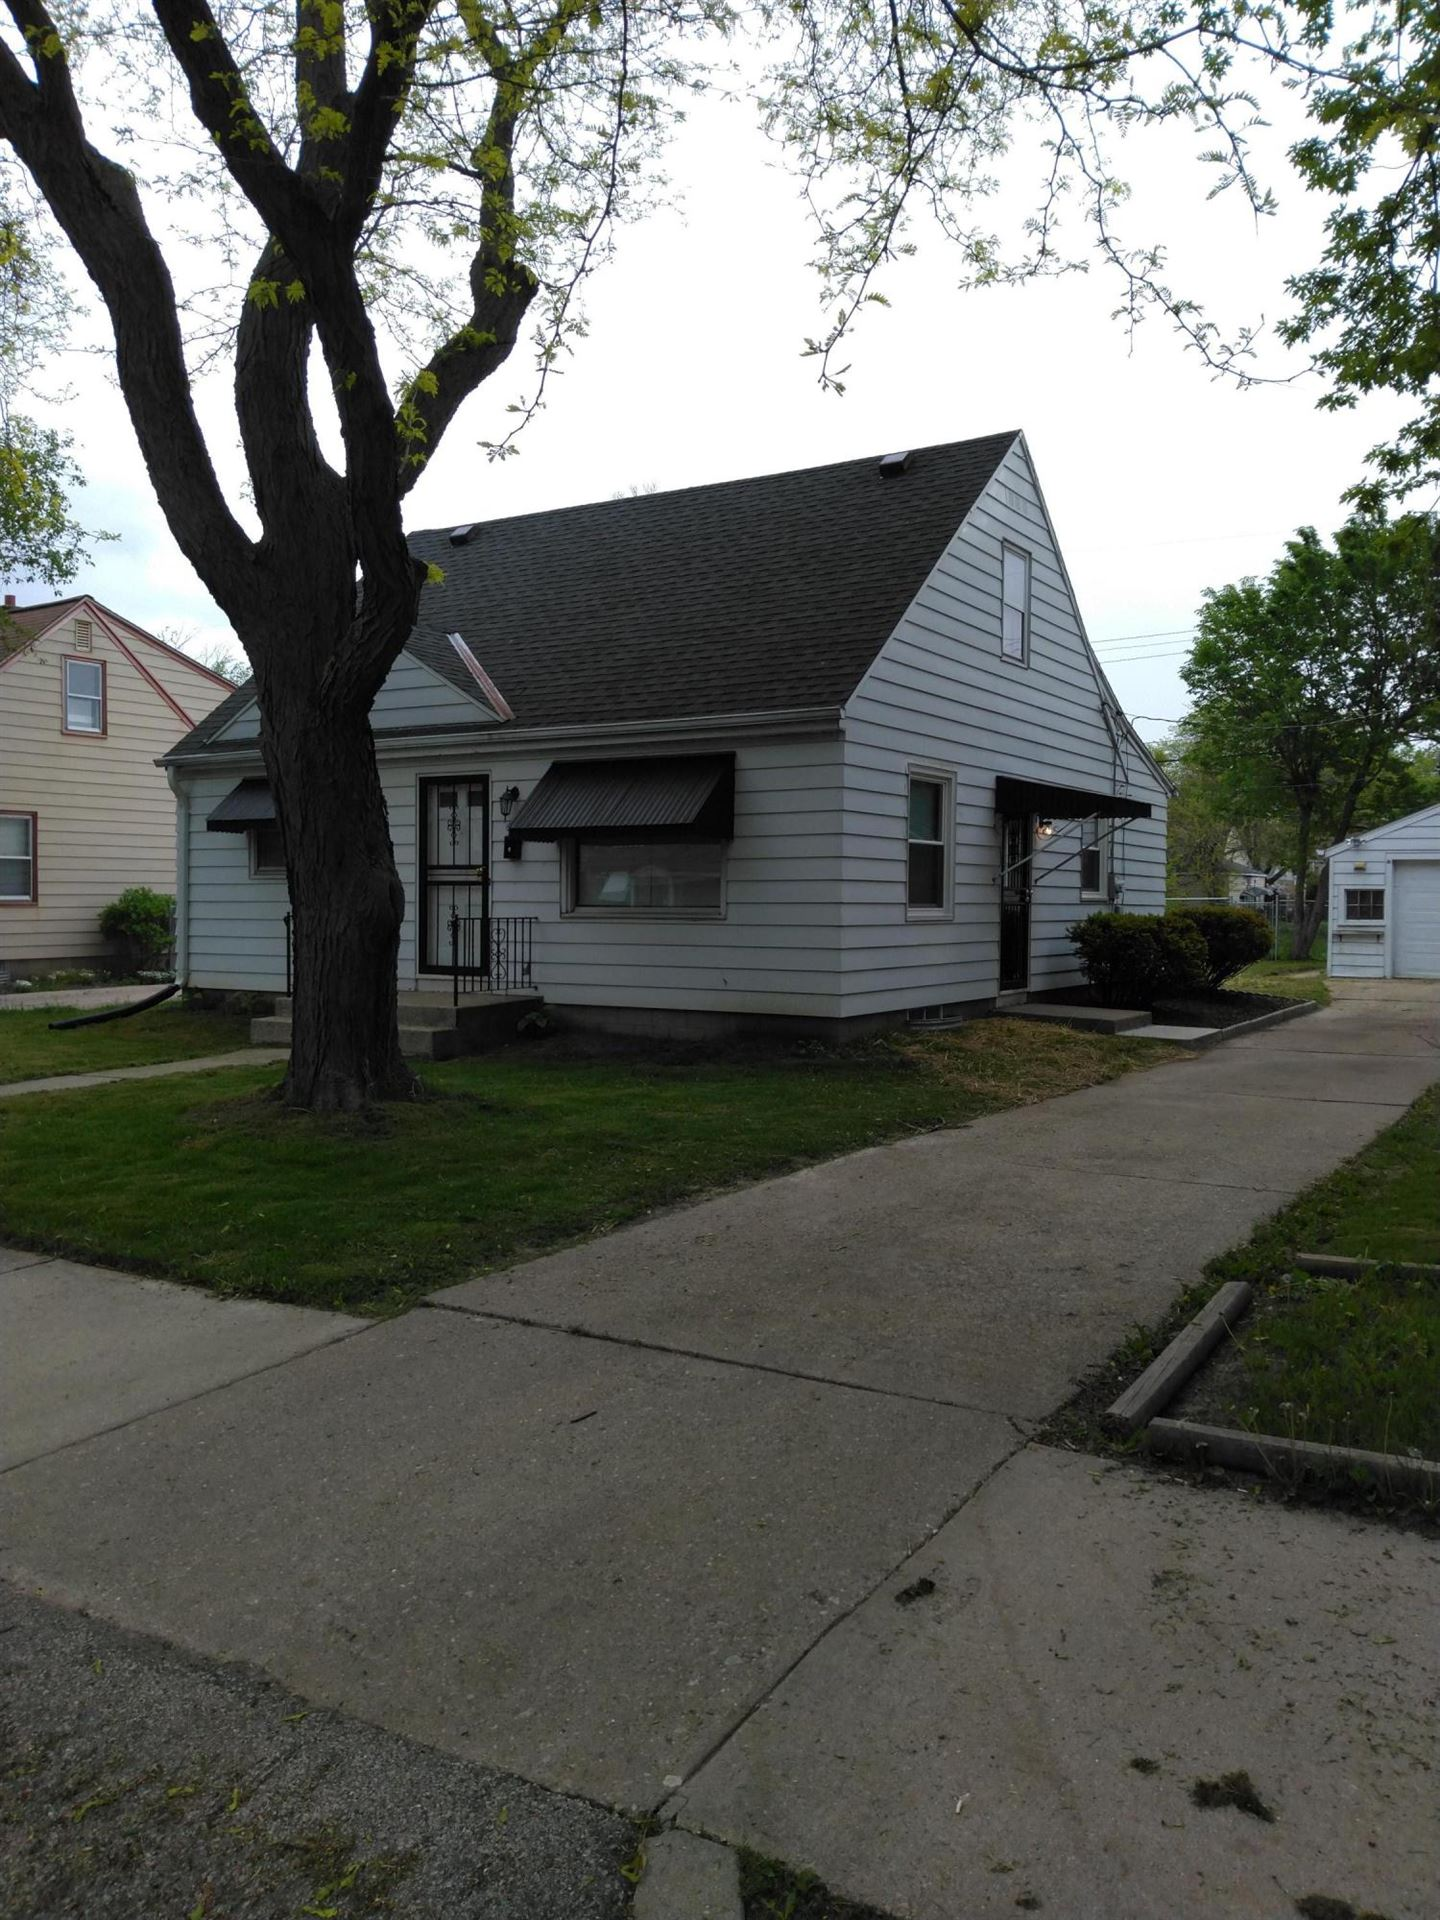 4882 N 64th St, Milwaukee, WI 53218 - #: 1691016